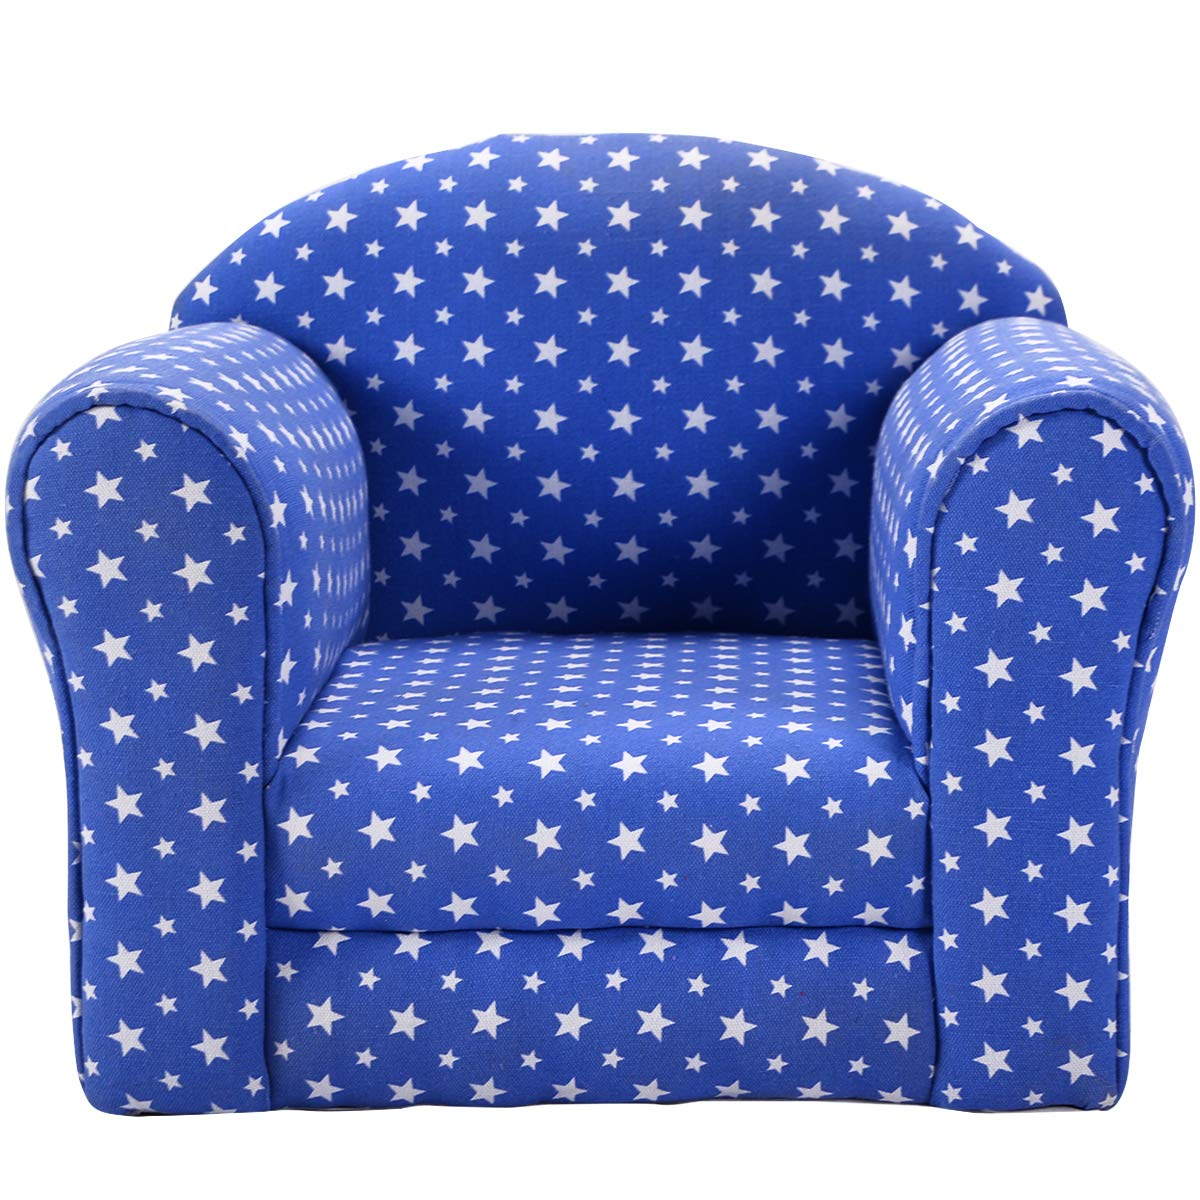 Costzon Kids Sofa Armrest Chair Couch Children Living Room Toddler Furniture (Star, Blue) by Costzon